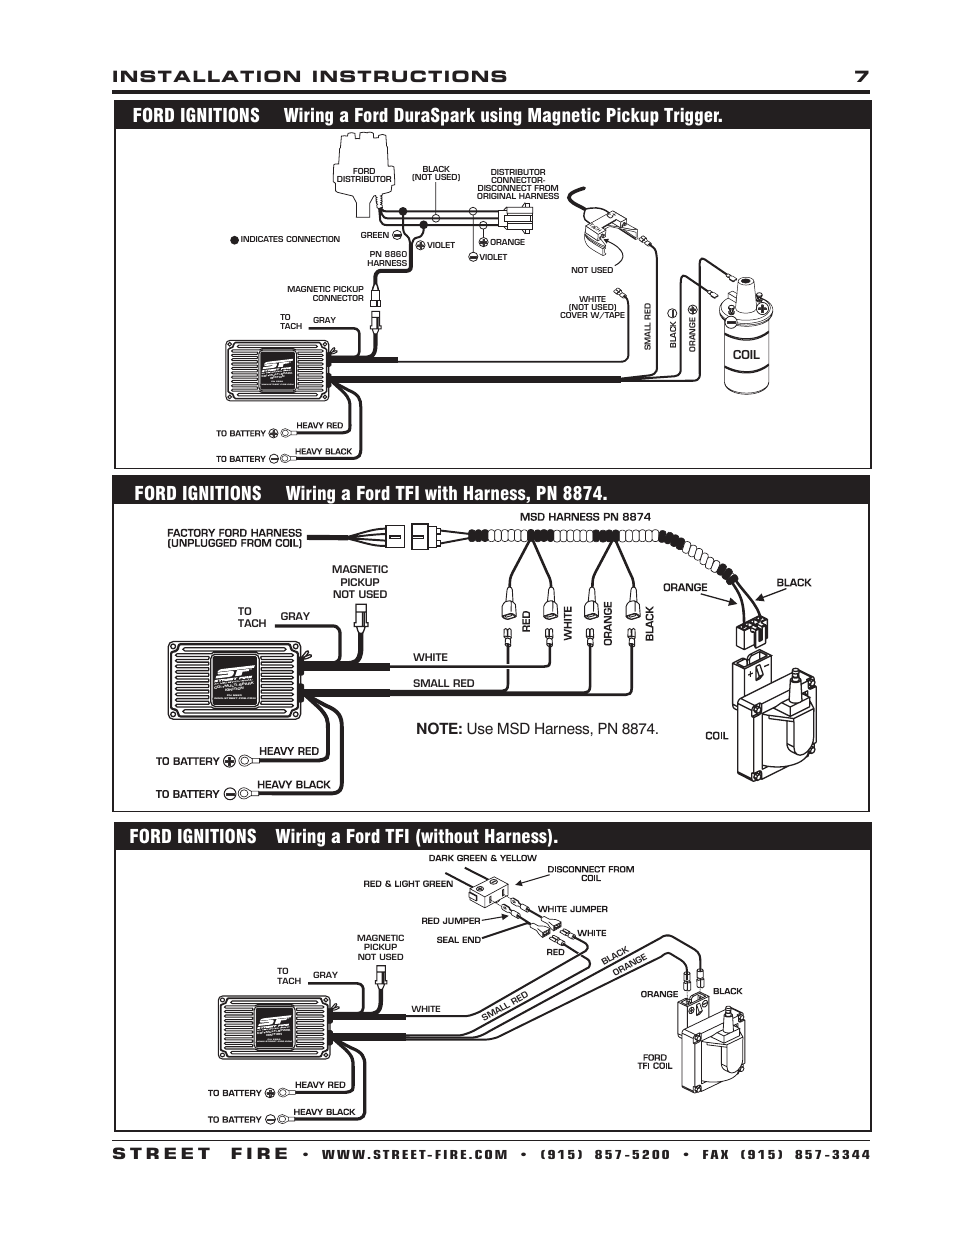 Msd Streetfire Ignition Wiring Diagram Trusted Diagrams 6ls Harness Street Fire Free Download U2022 Oasis Dl Co Cdi